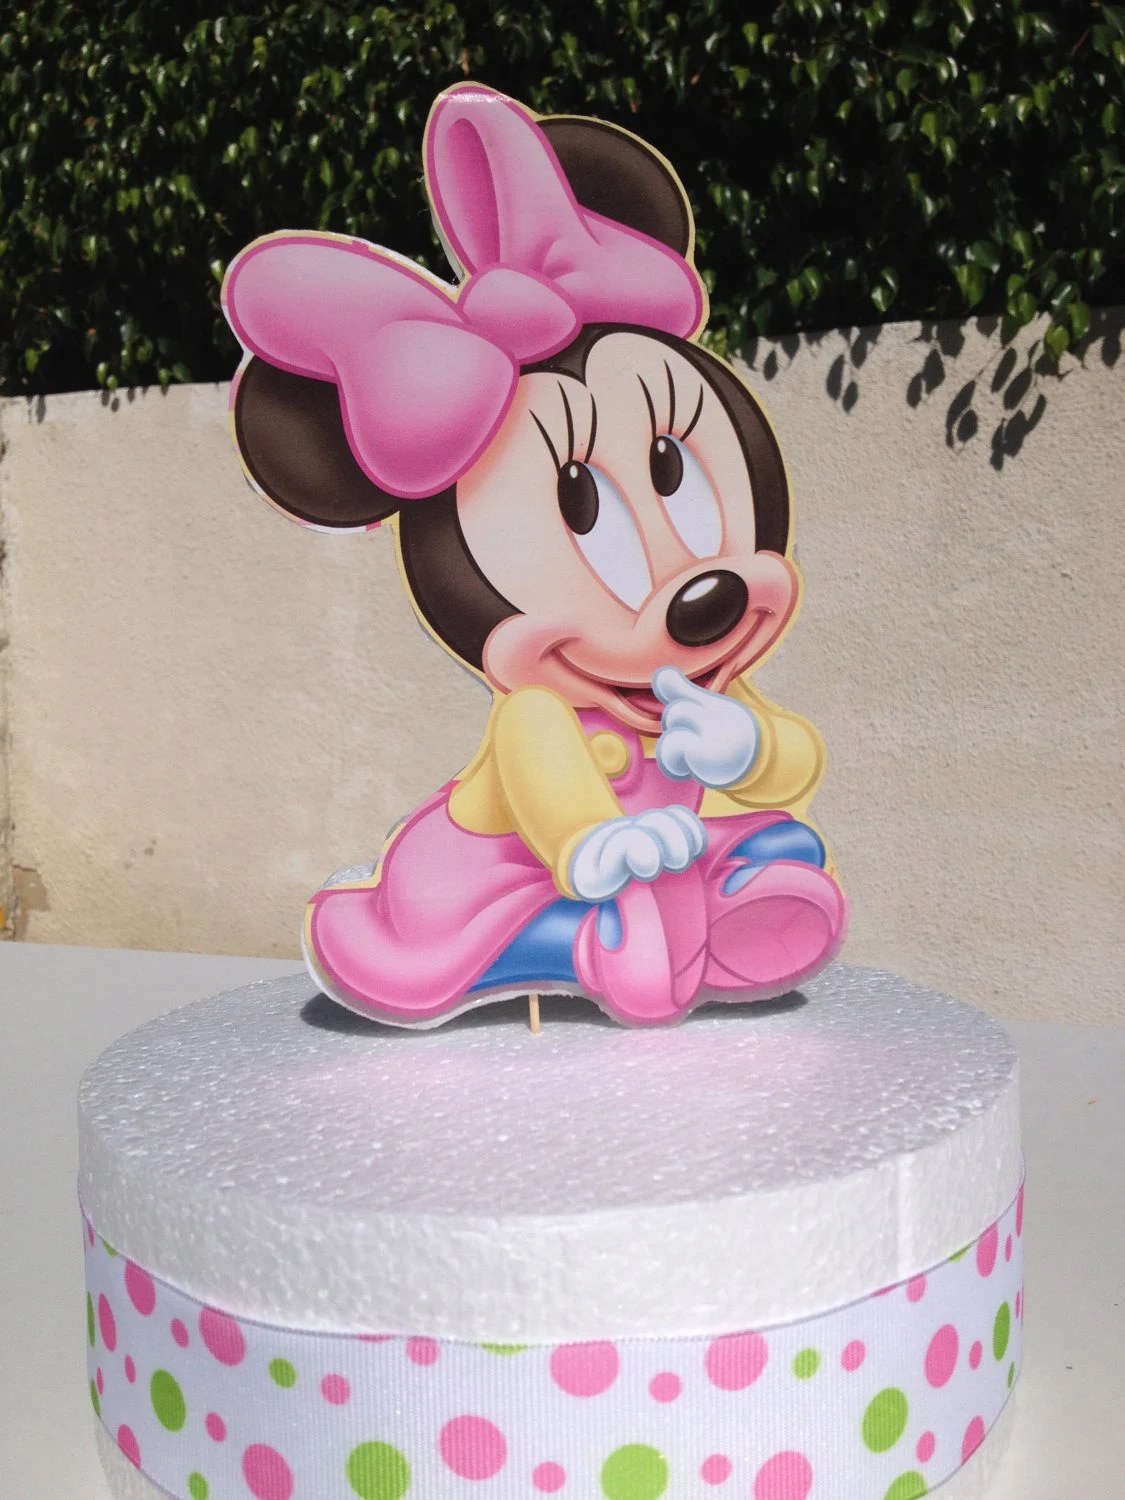 Minnie Mouse Baby Shower Cake : minnie, mouse, shower, Minnie, Mouse, Themed, Topper